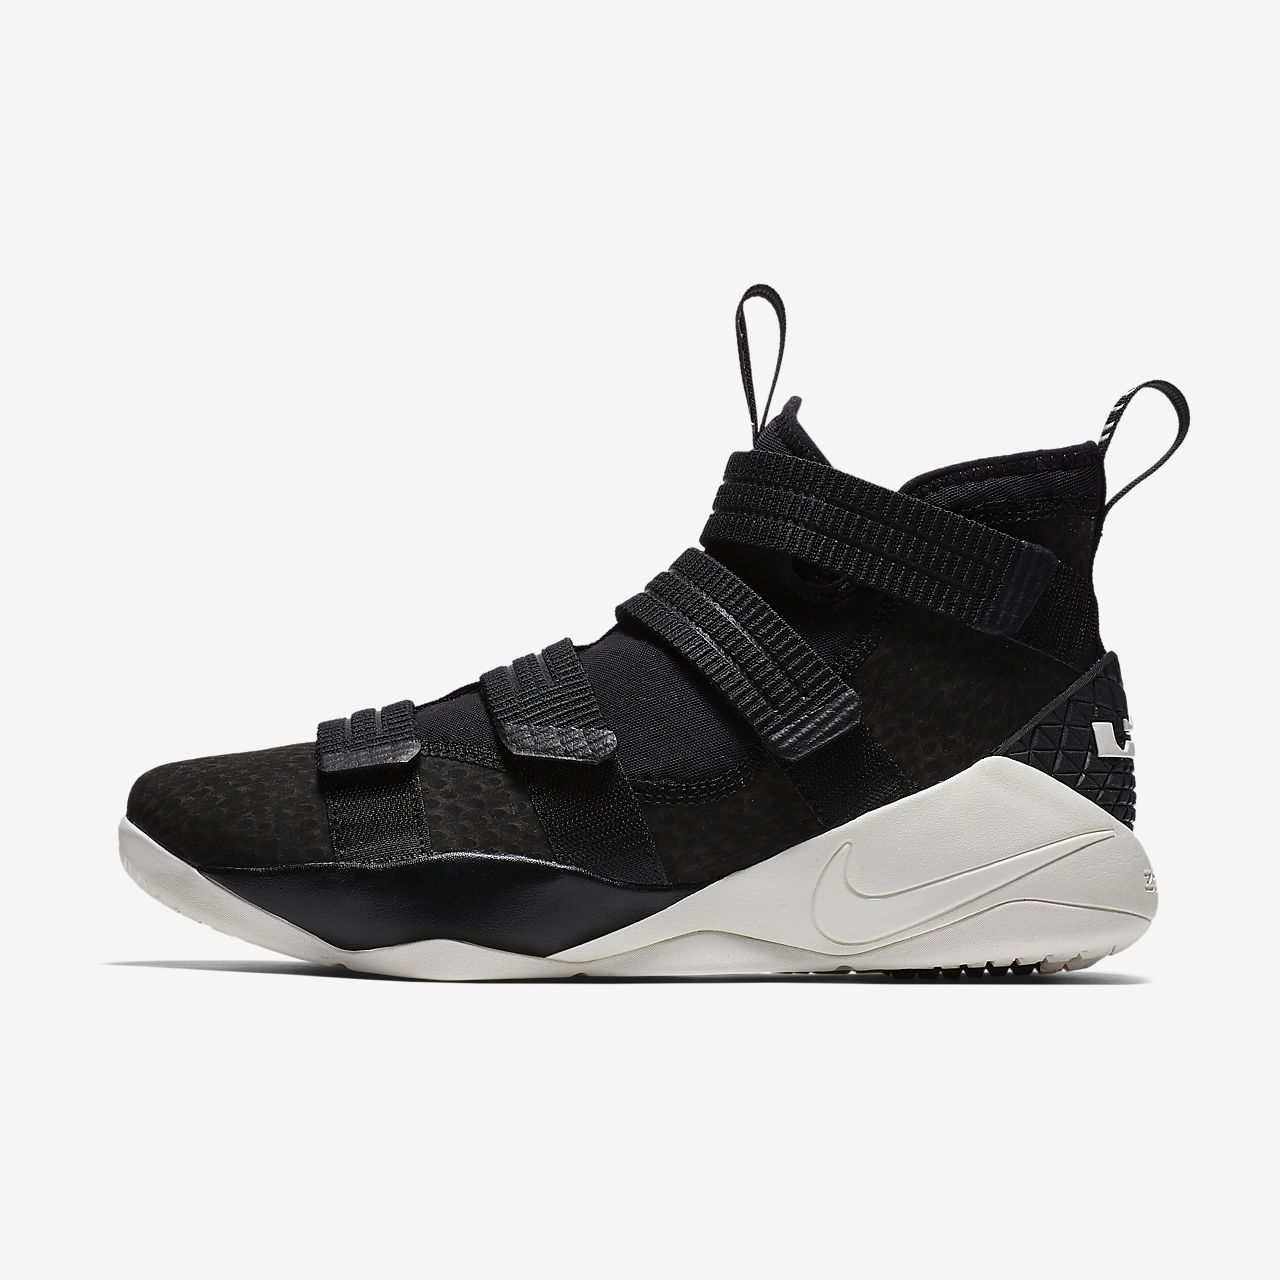 size 40 a5e34 86231 LeBron Soldier XI EP